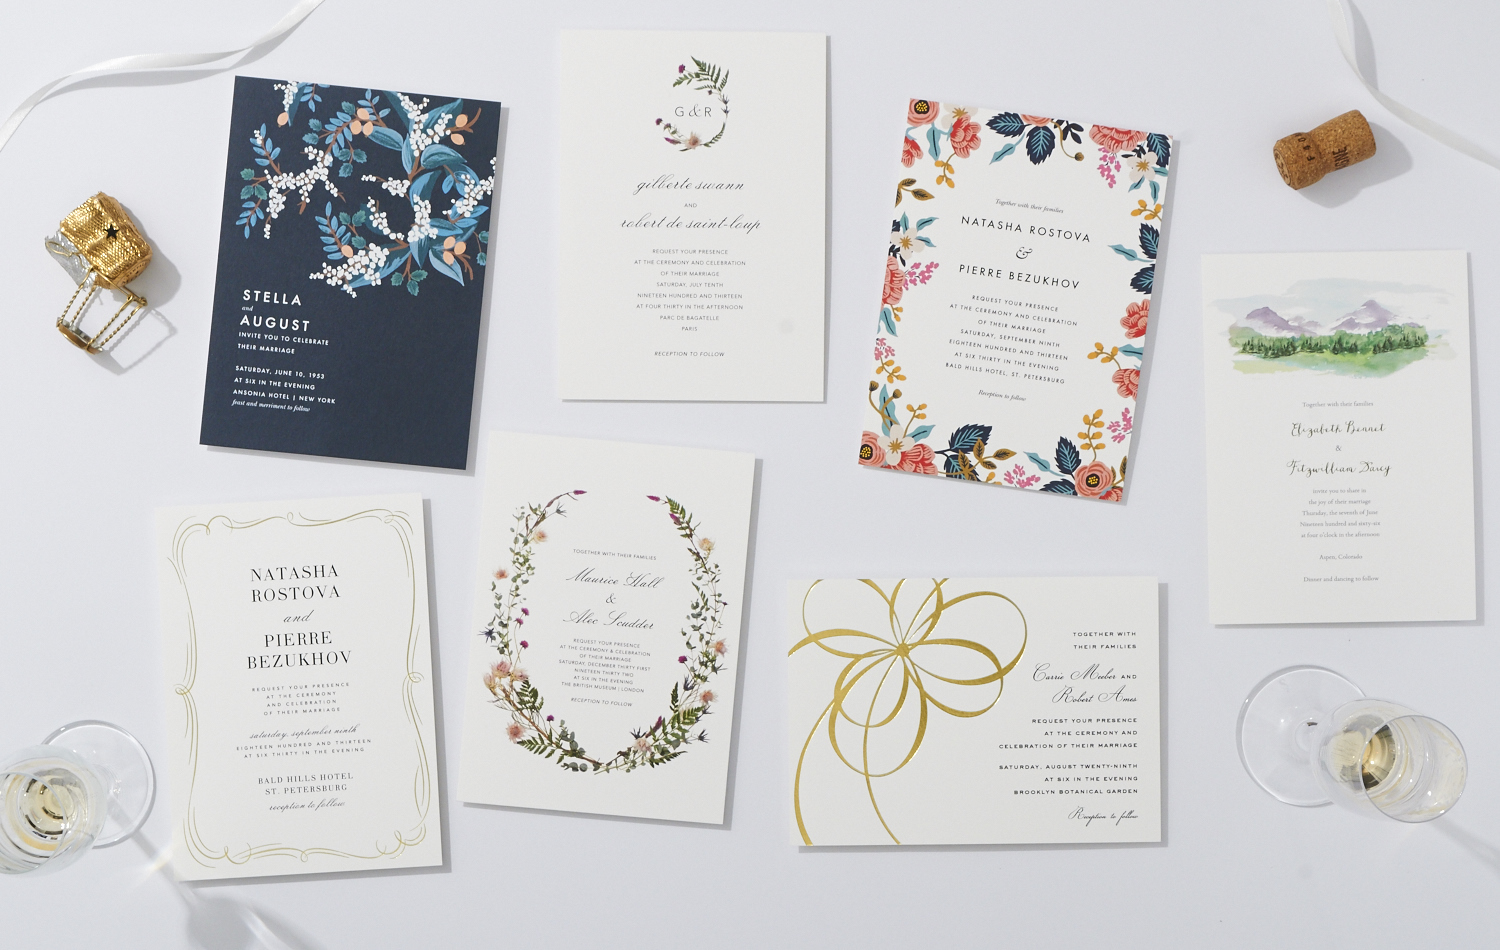 Print and Digital Ideas for Your Wedding Events - Inside Weddings